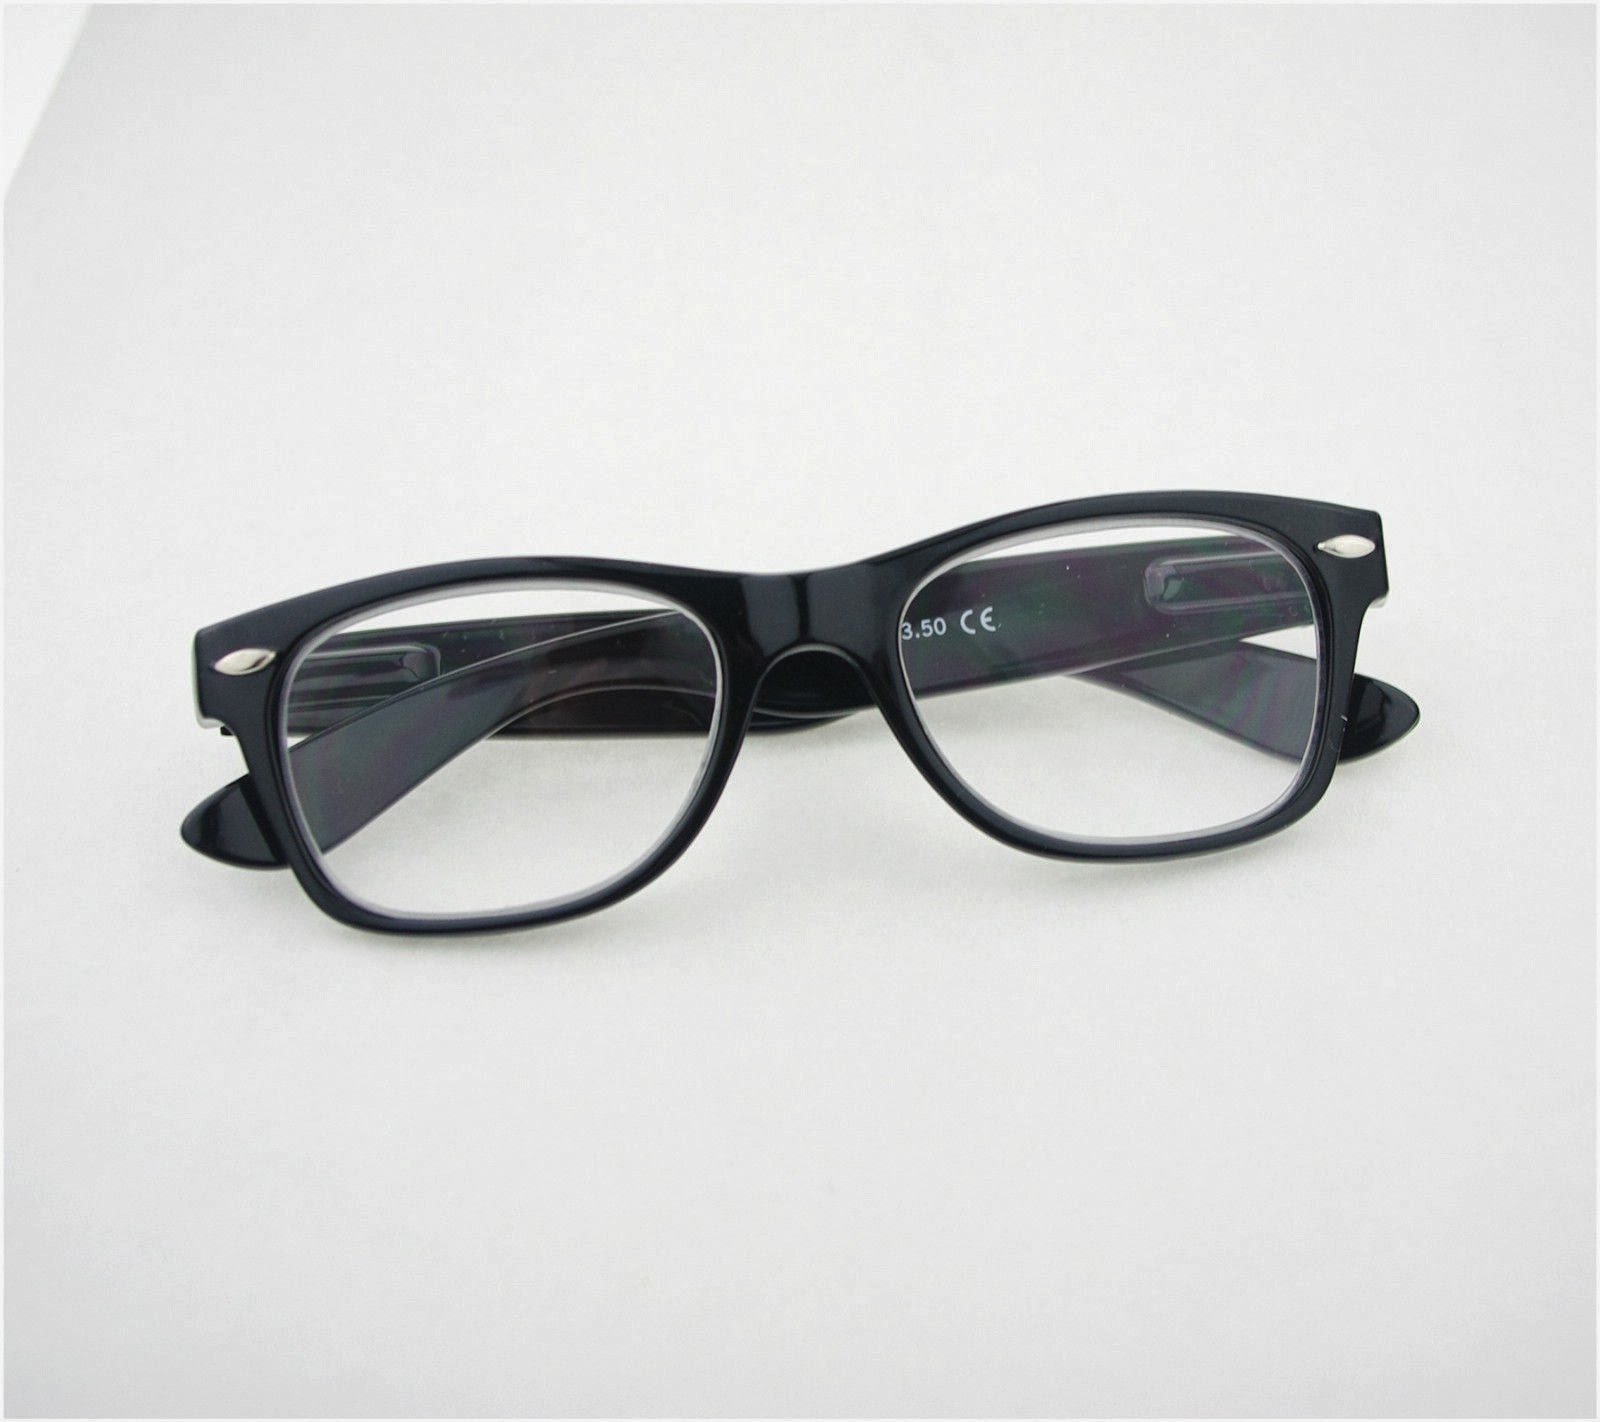 bd5c5ad8d77 Cool Reading Glasses from ebay